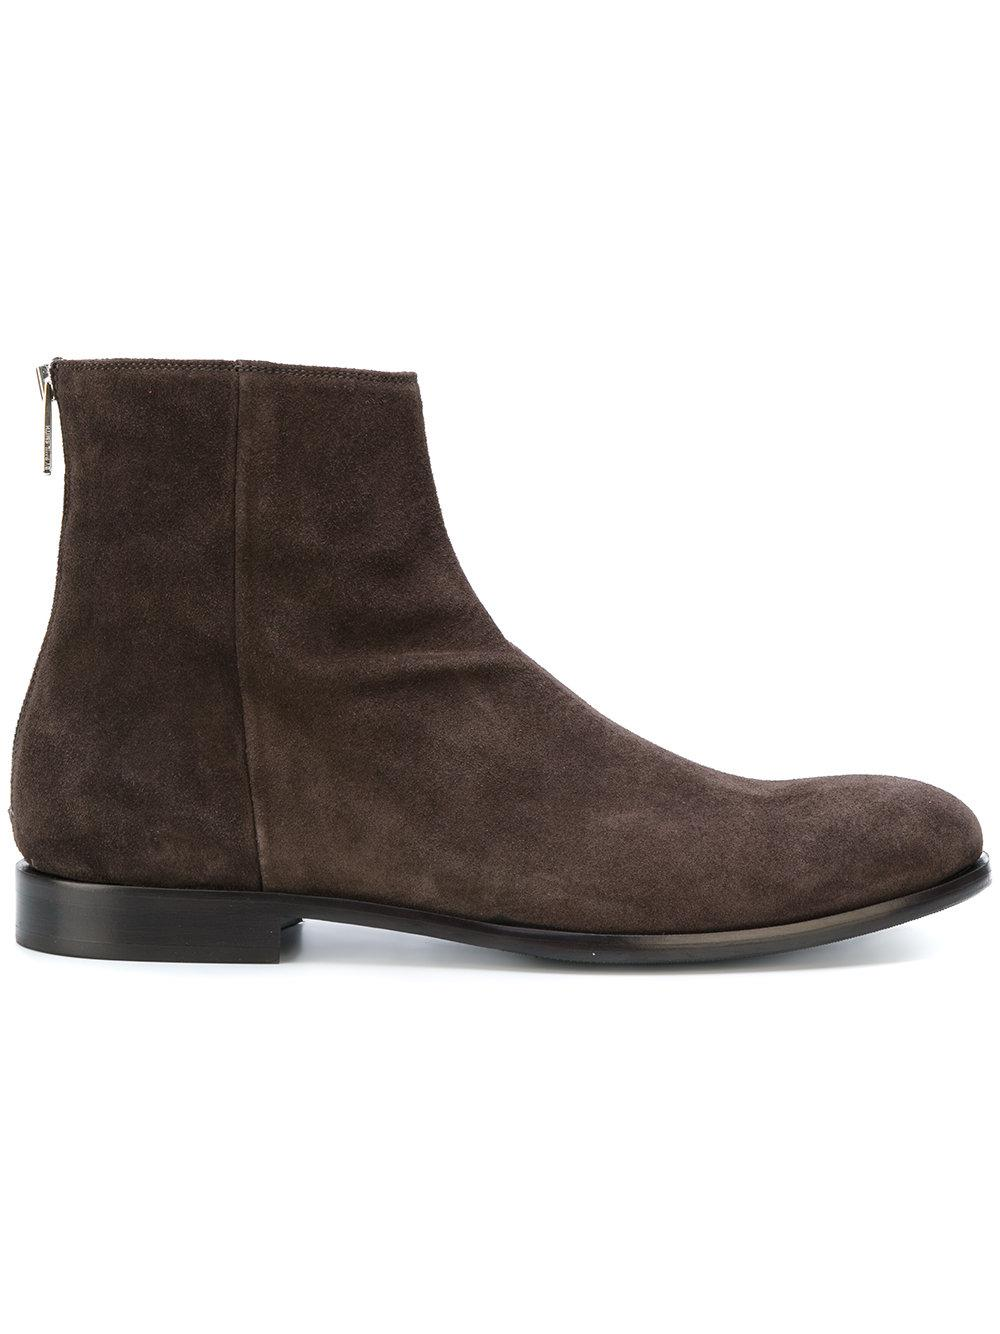 68e01ccfbfa Lyst - PS by Paul Smith Ankle Length Boots in Brown for Men